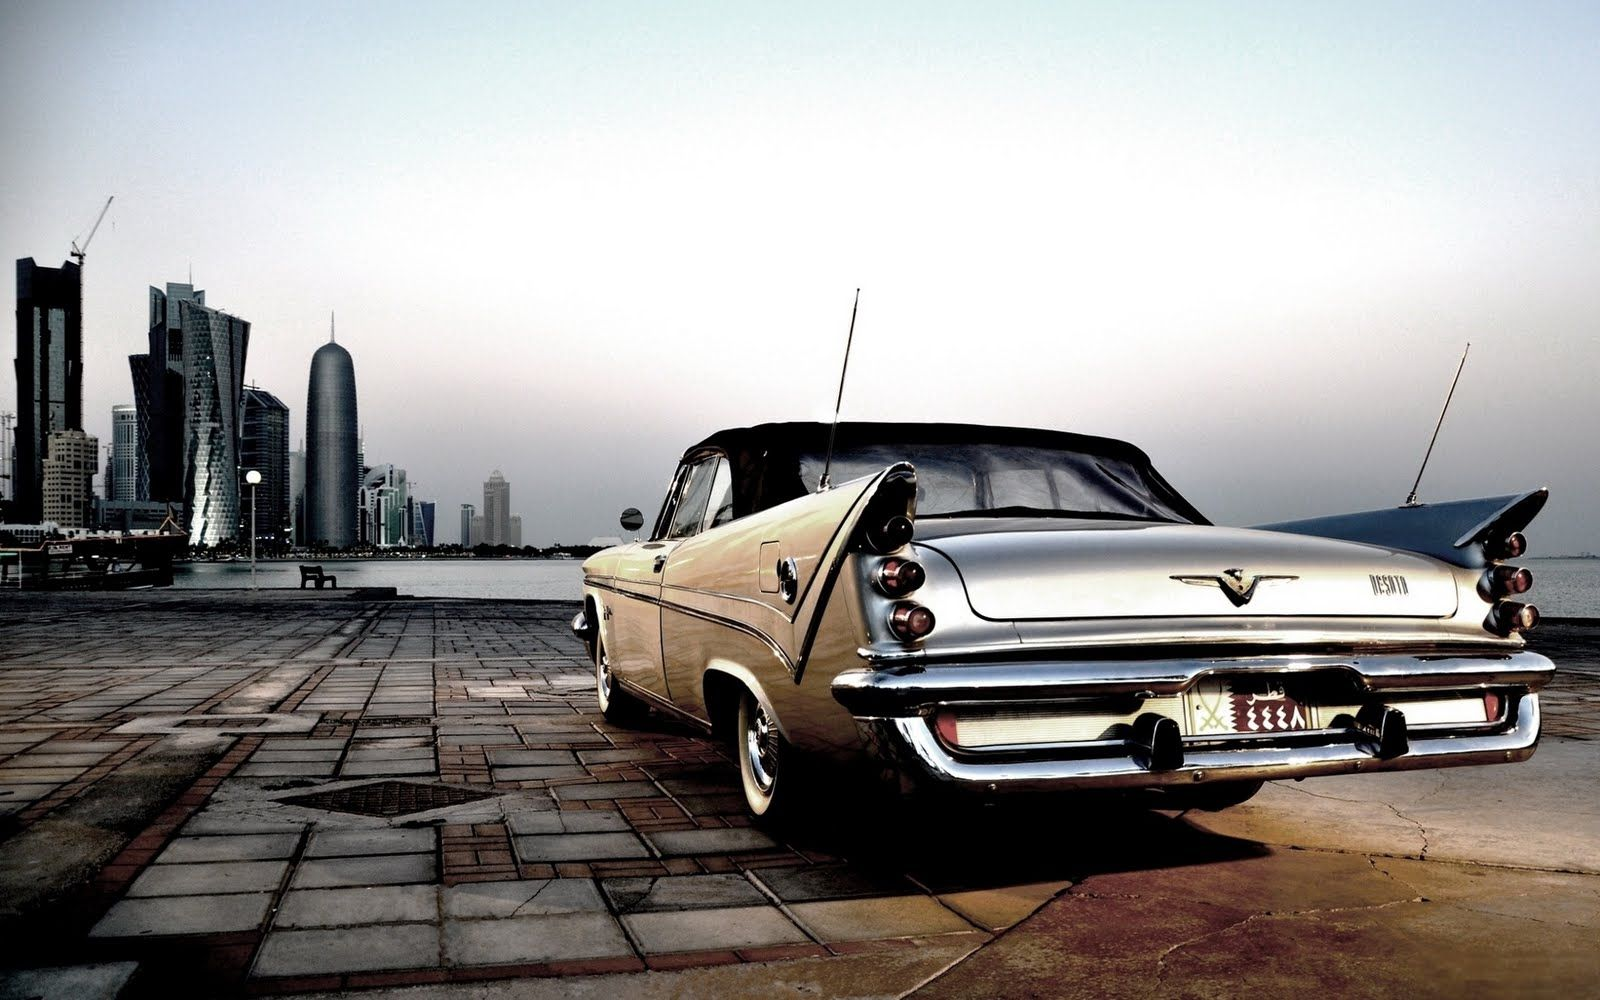 Chrysler Desoto City Old Car Photo Hd Wallpaper Cool Old Cars Car Photos Hd Old Classic Cars